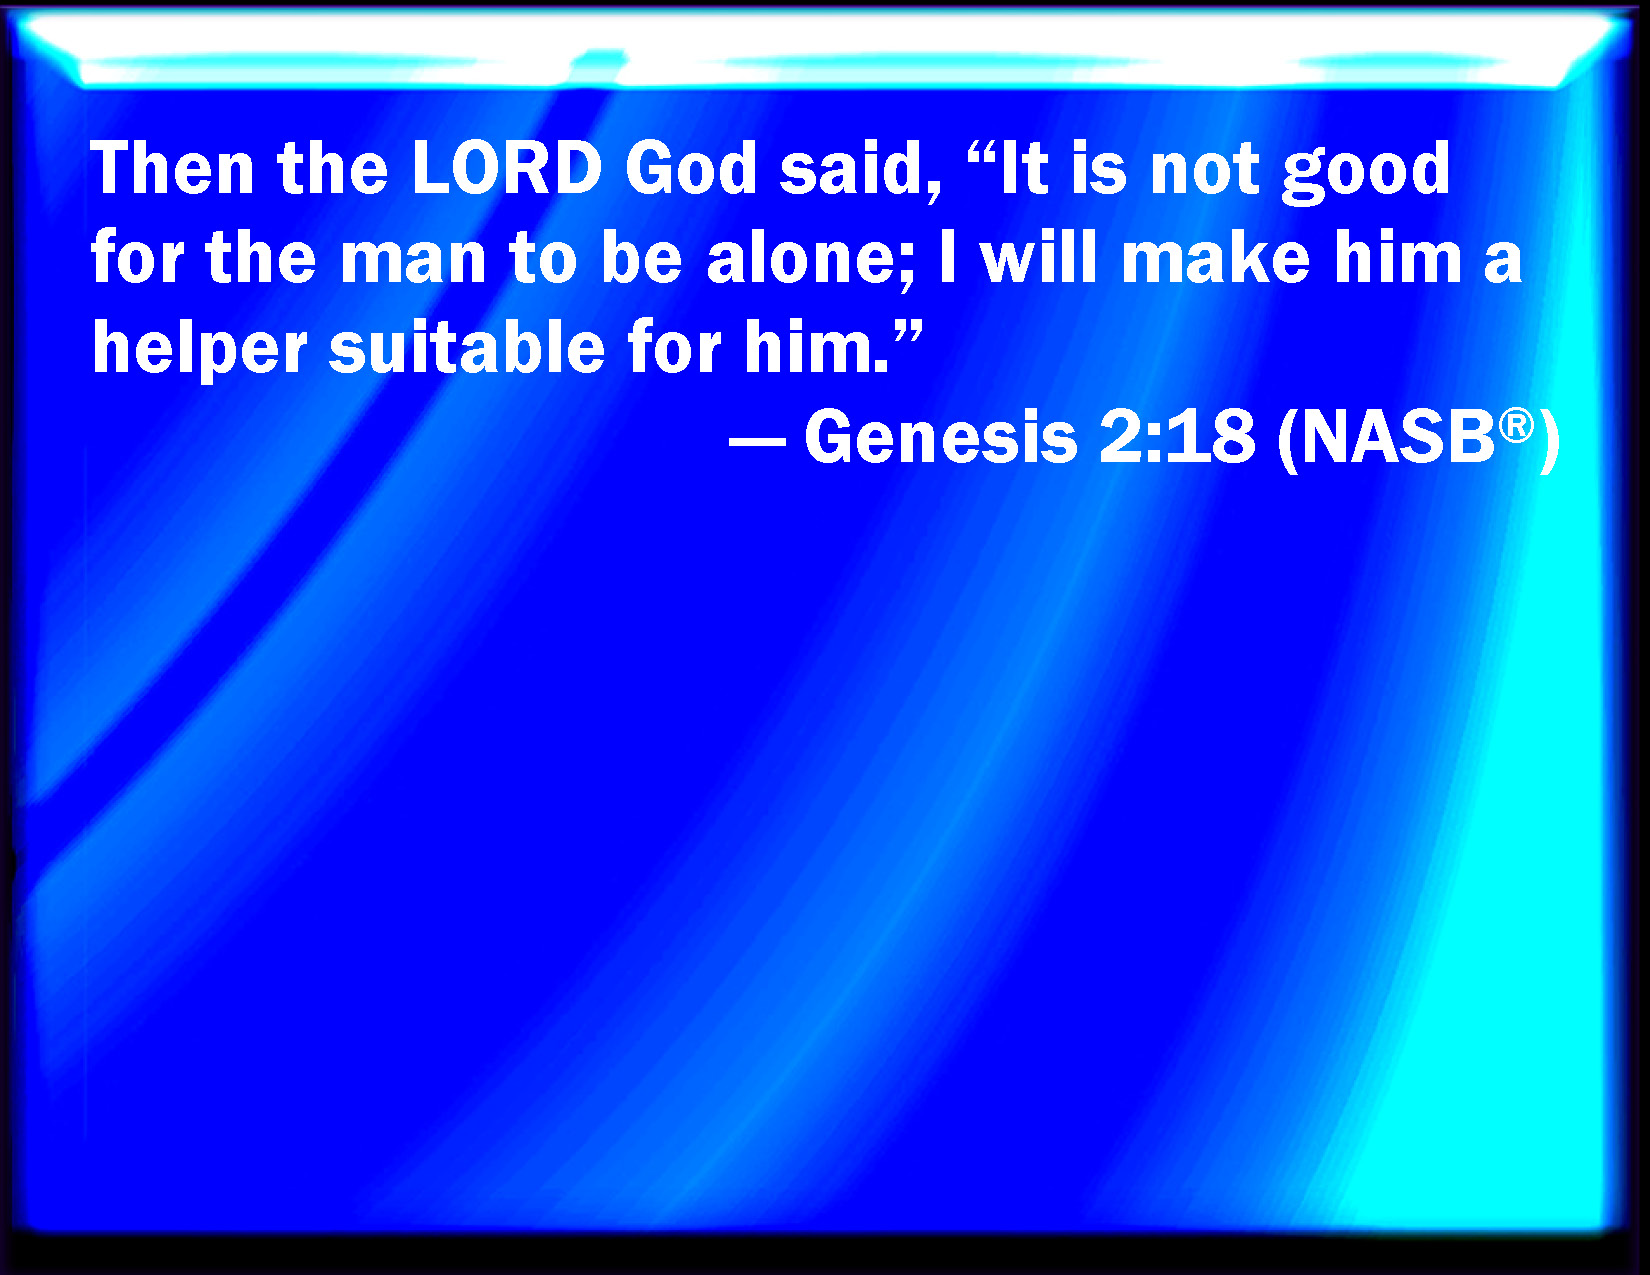 God said man should not be alone